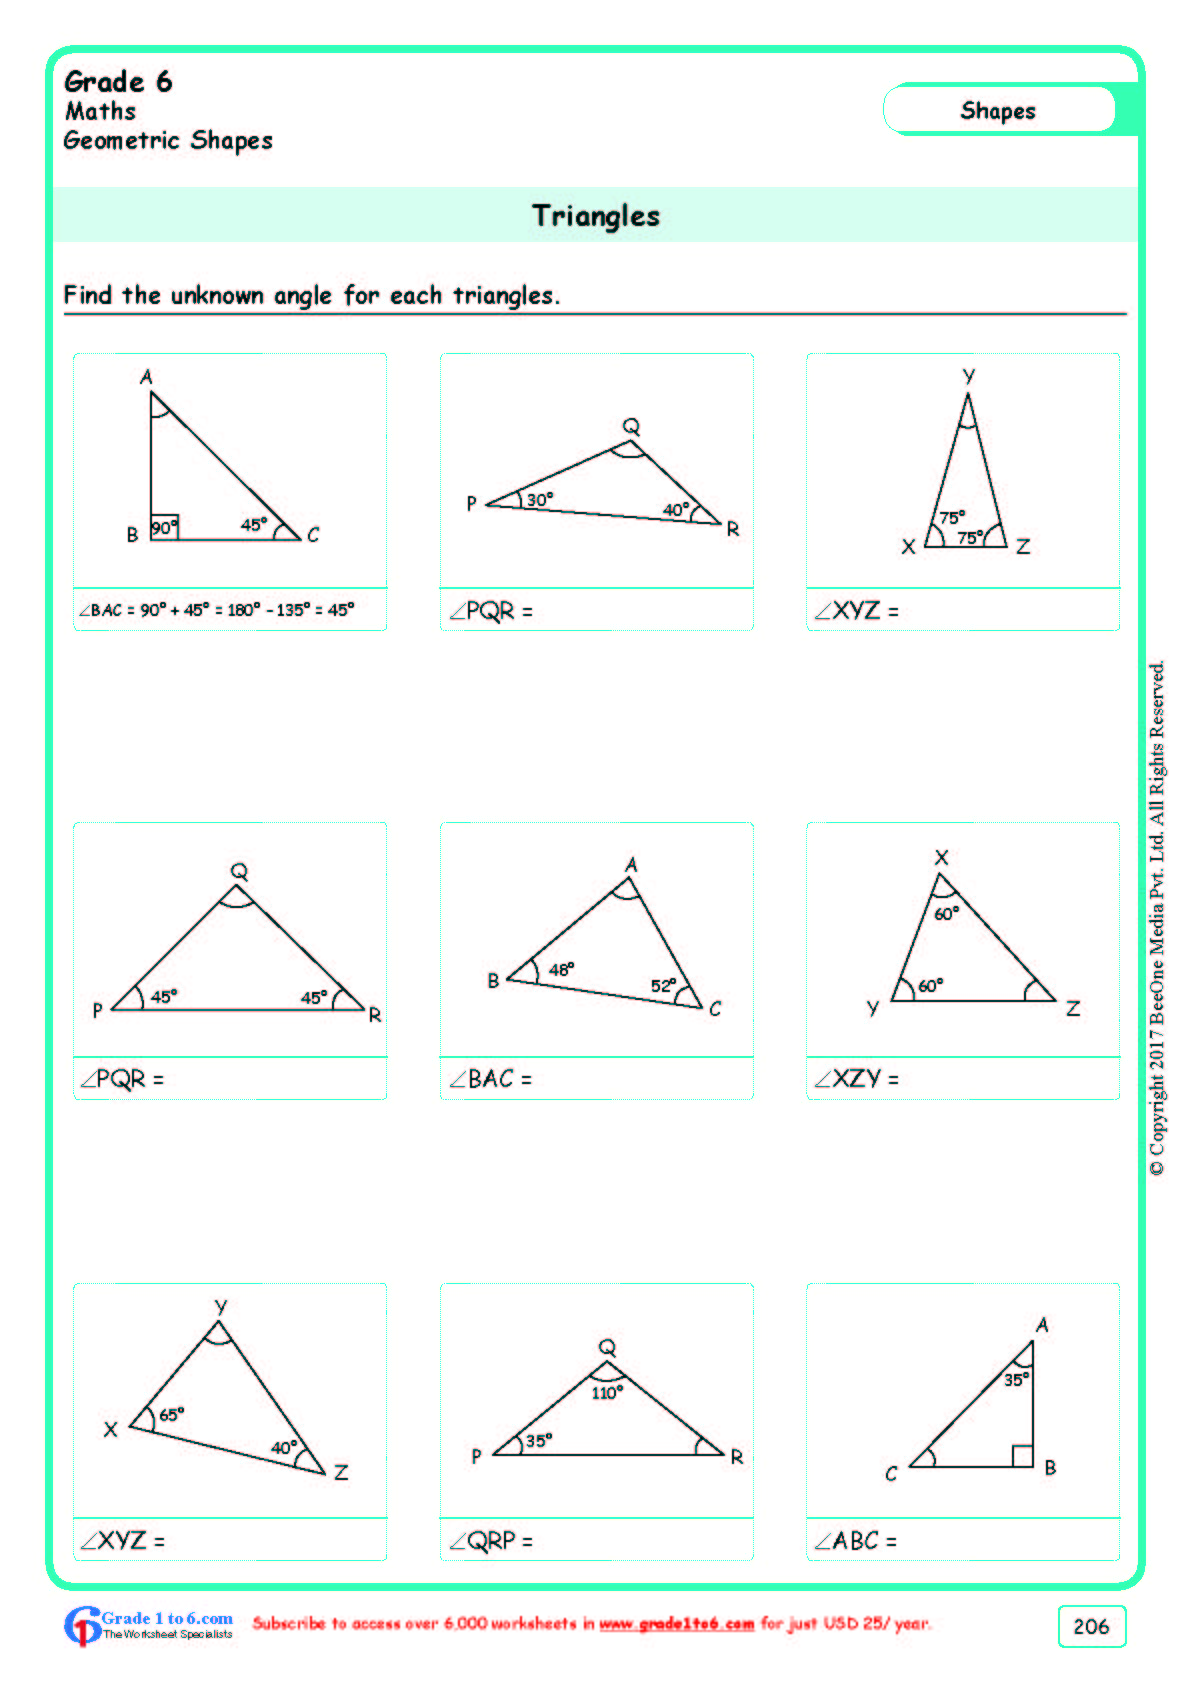 - Free Math Worksheets For Grade 6|class 6|IB |CBSE|ICSE|K12 And All